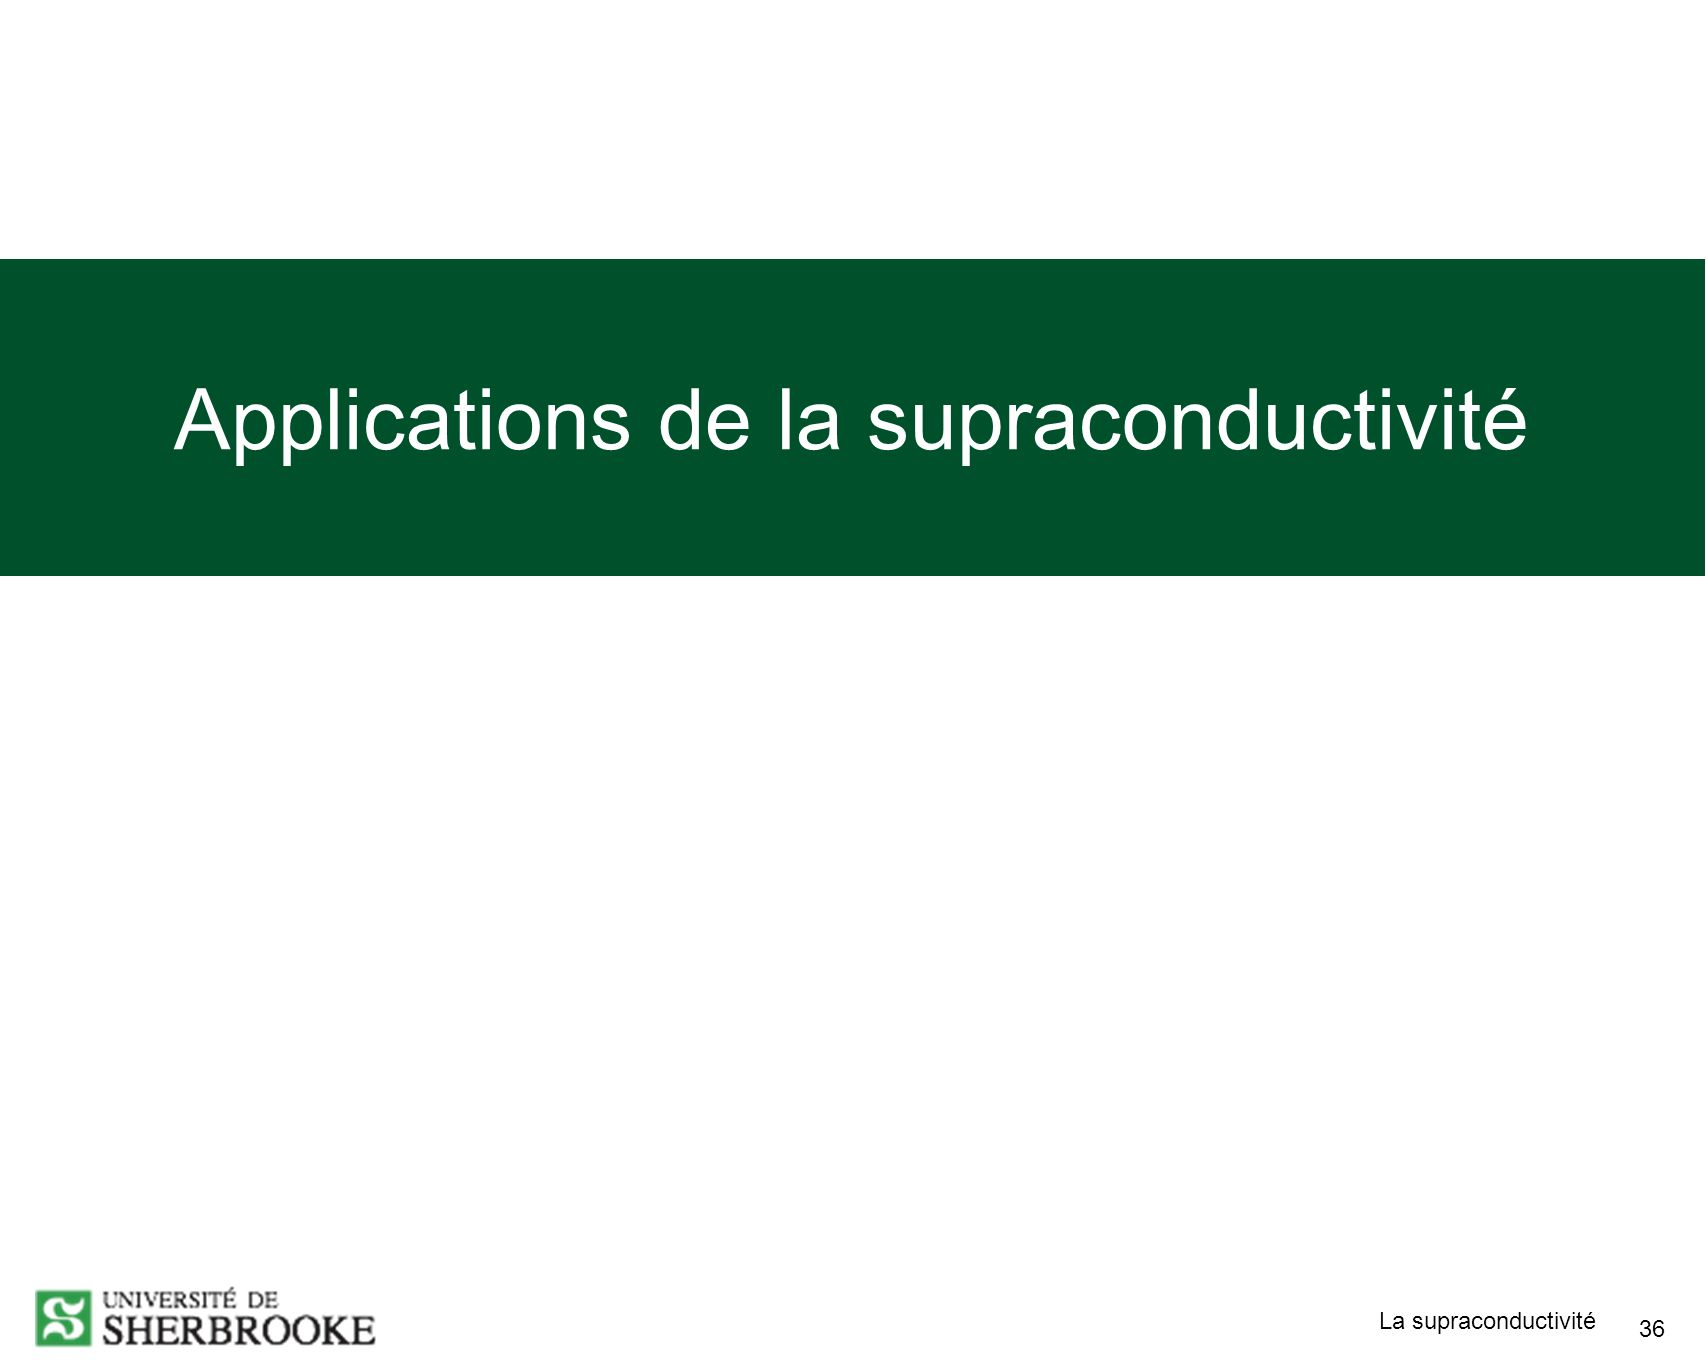 Applications de la supraconductivité